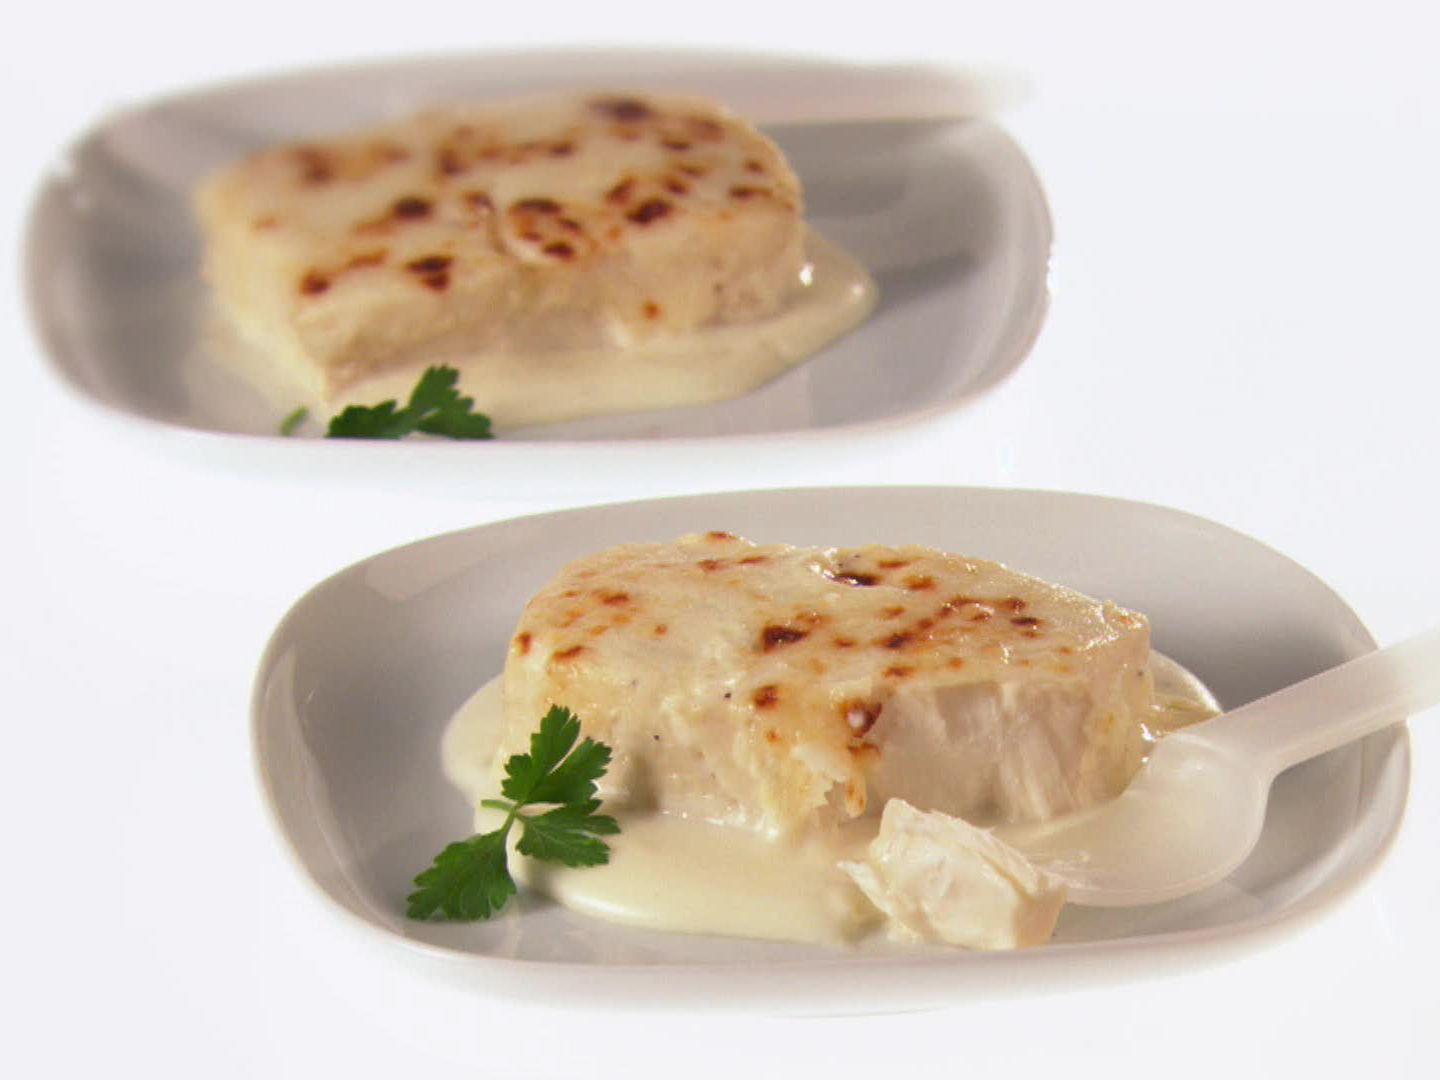 Broiled halibut with bechamel sauce recipe giada de laurentiis broiled halibut with bechamel sauce recipe giada de laurentiis food network foodnetwork forumfinder Choice Image